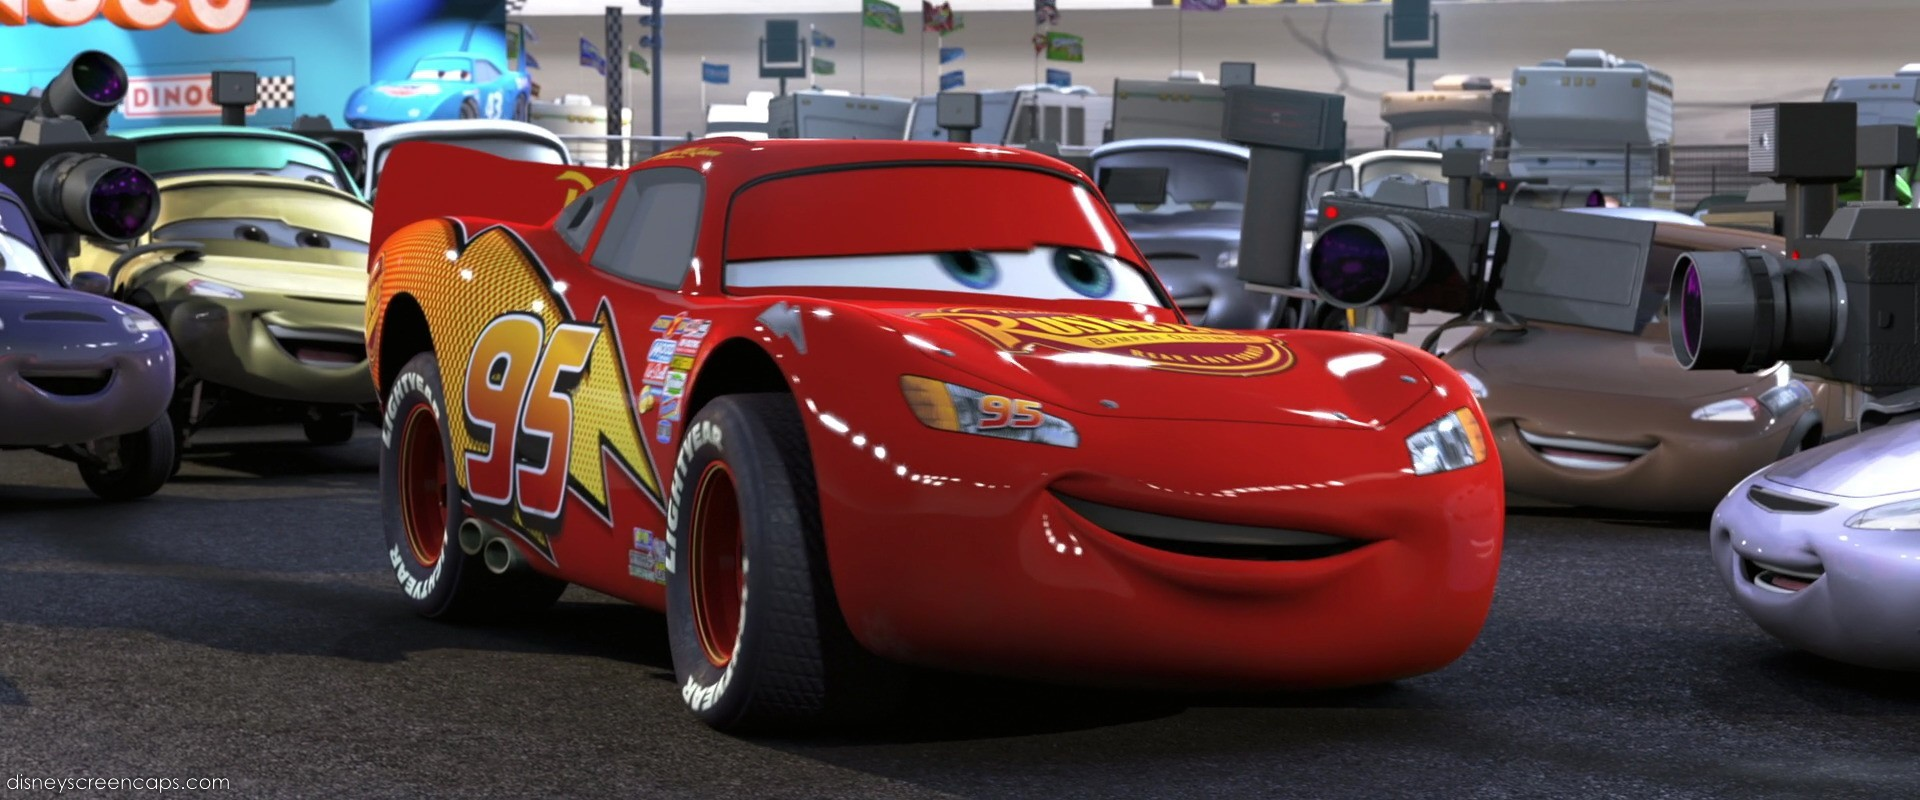 which type of lightning mcqueen do you like best poll results lightning mcqueen fanpop. Black Bedroom Furniture Sets. Home Design Ideas